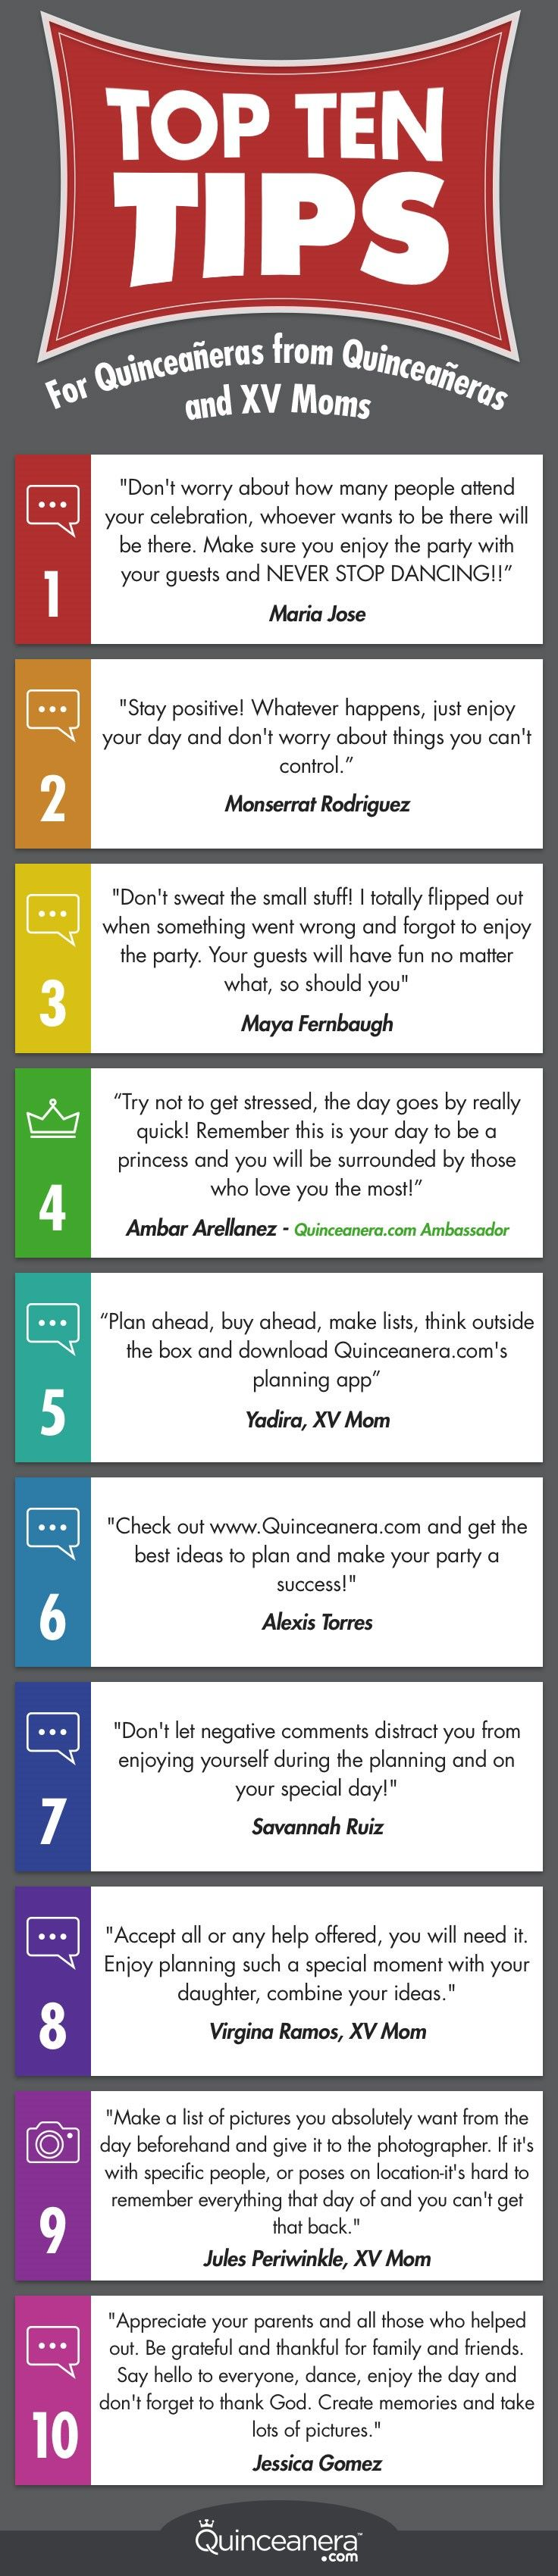 Follow these useful tips and enjoy your quinceañera to the max! - See more at: http://www.quinceanera.com/planning/useful-tips-quince-day/#sthash.73Q3czgd.dpuf